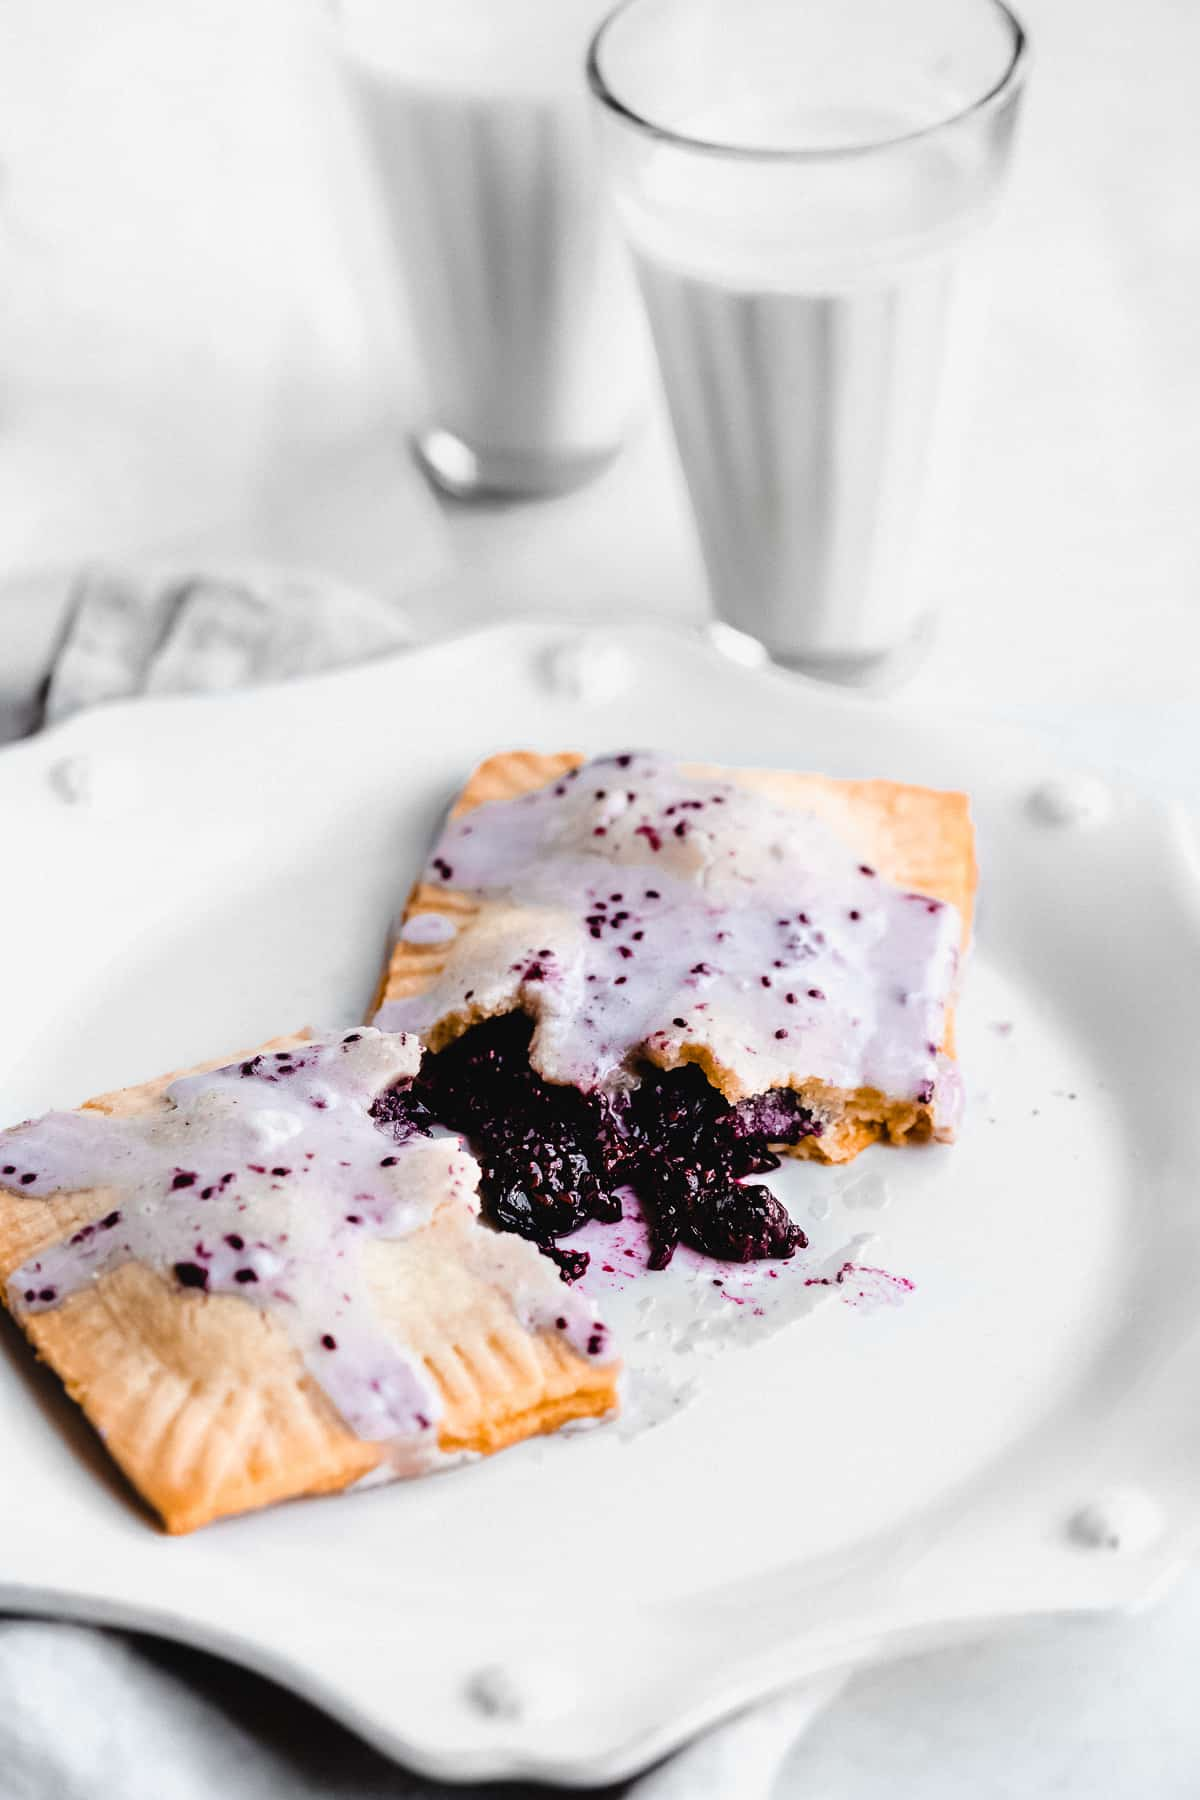 Pop tart broken open on a plate with blueberry jam spilling out and frosting.